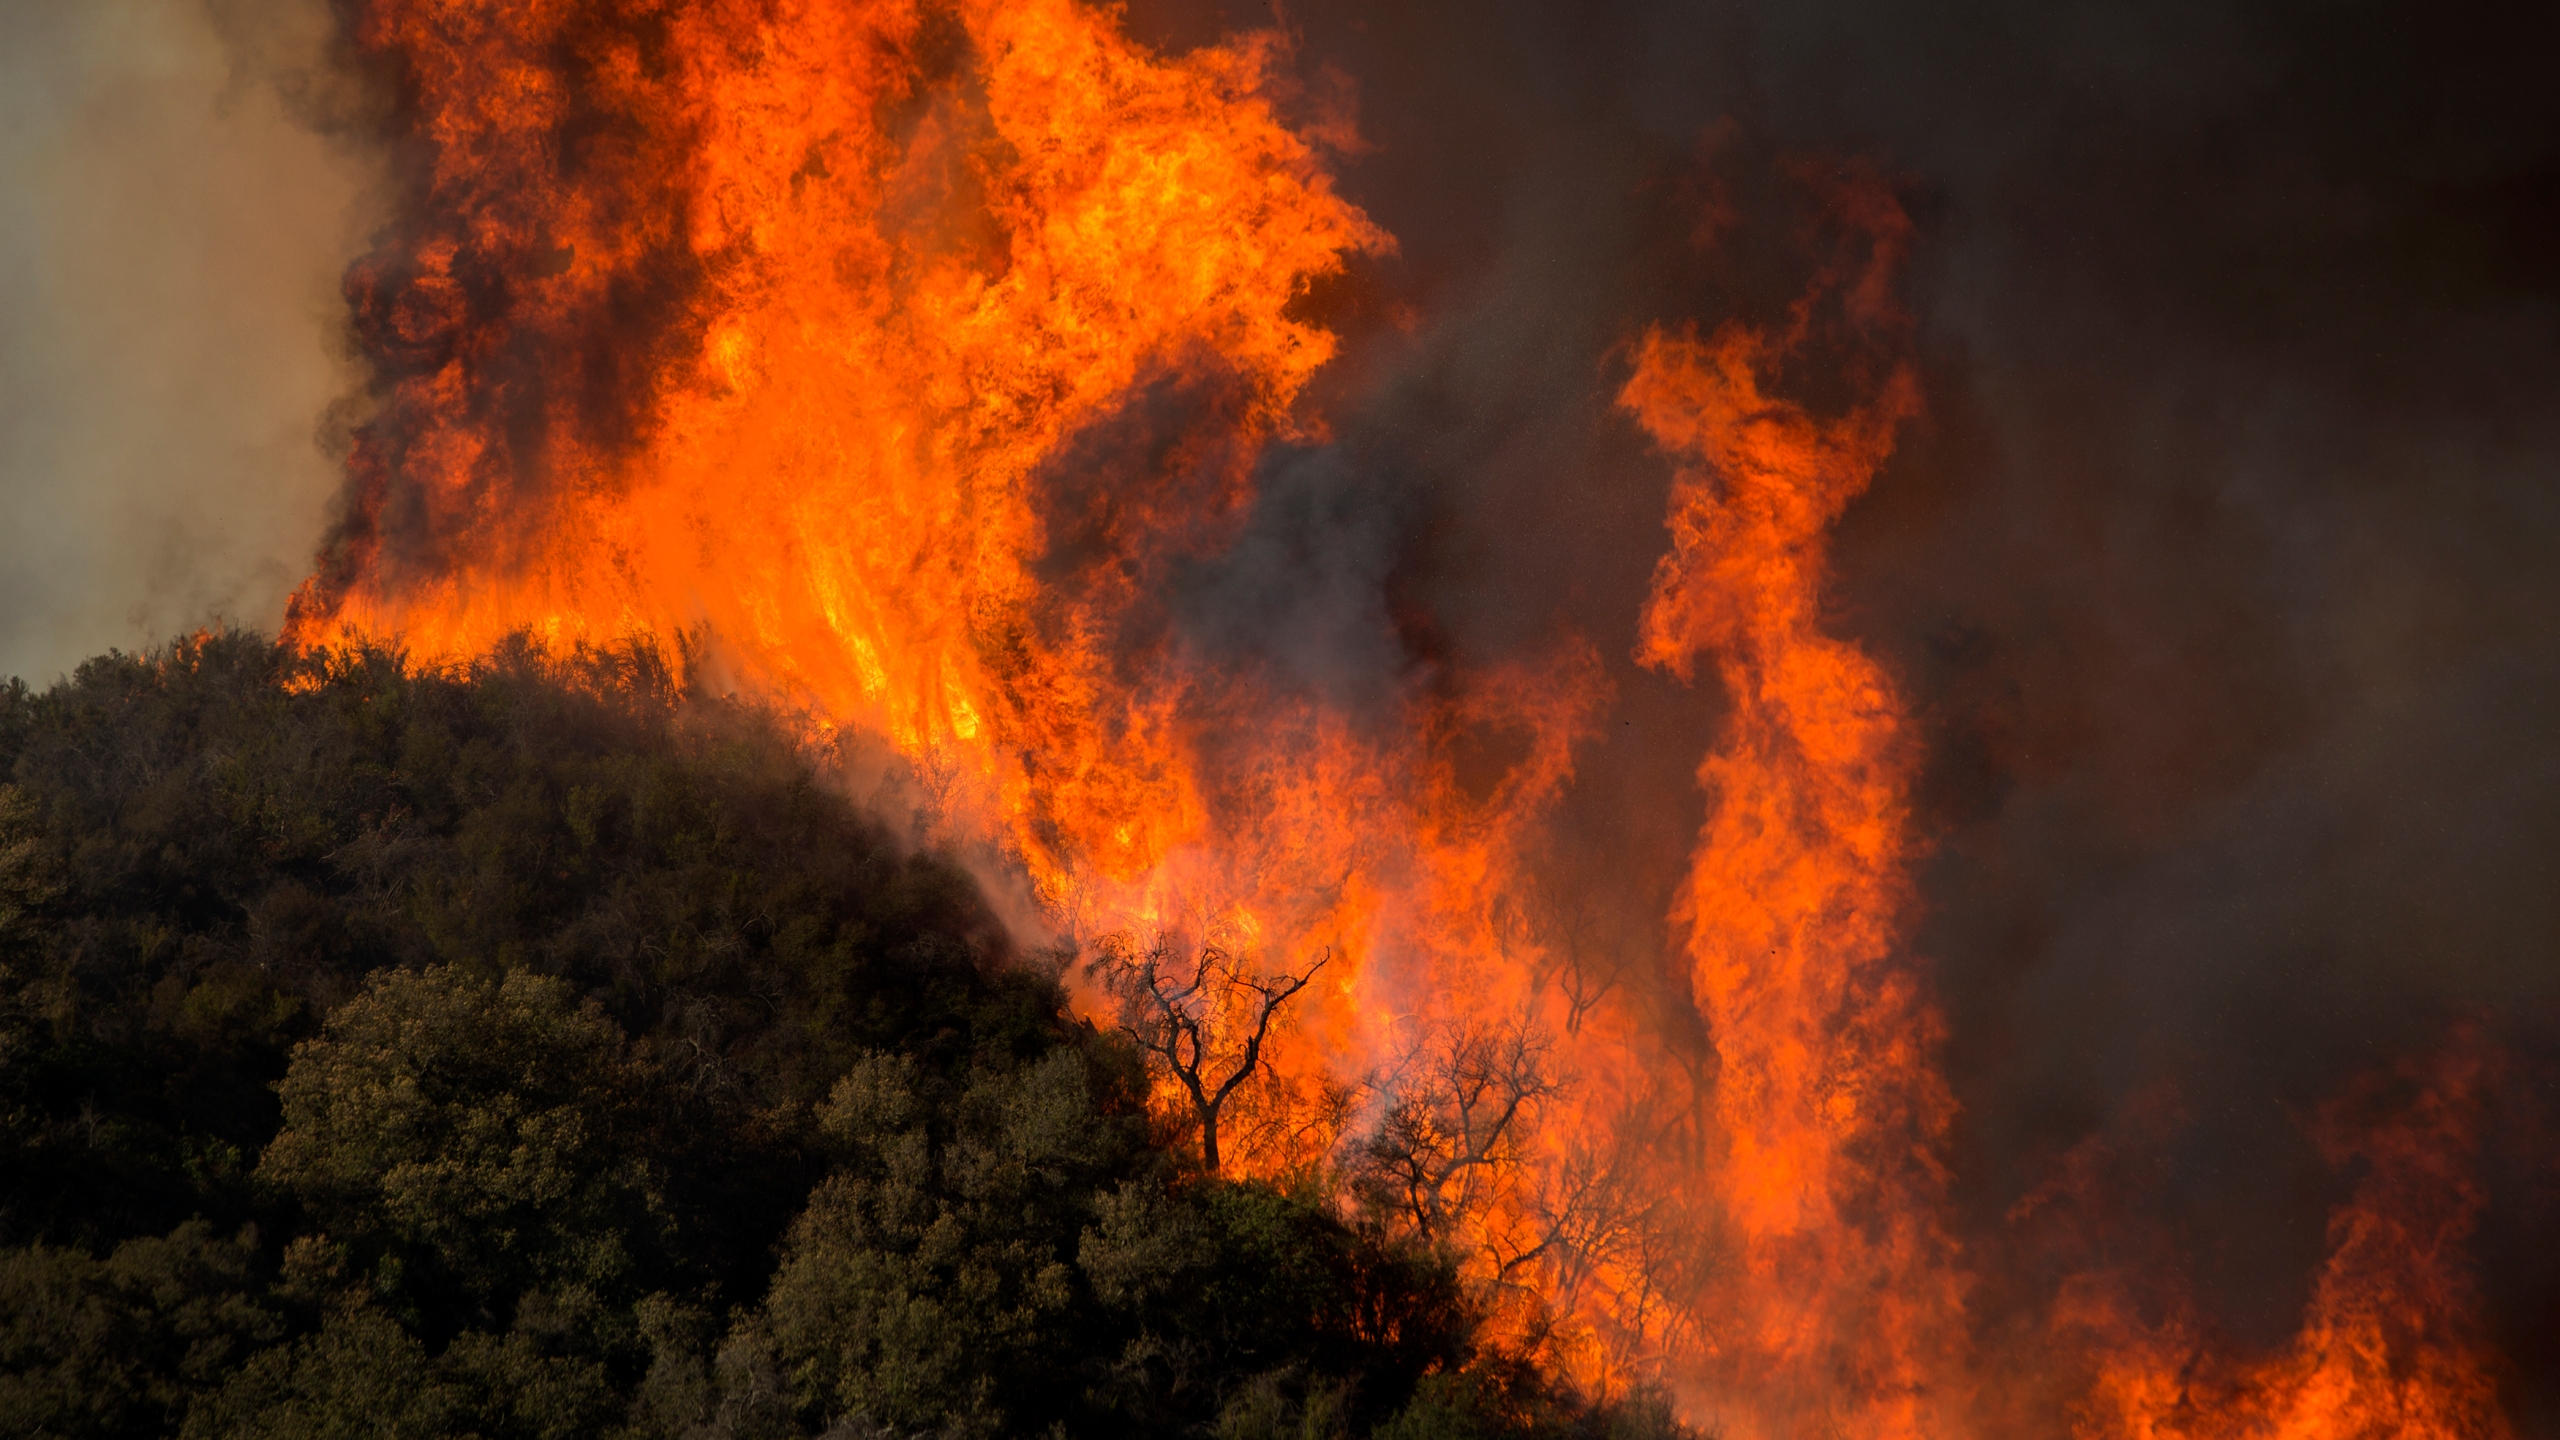 Wind-driven flames move across Malibu Creek State Park during the Woolsey Fire on Nov. 9, 2018, near Malibu, California. (Credit: David McNew/Getty Images)